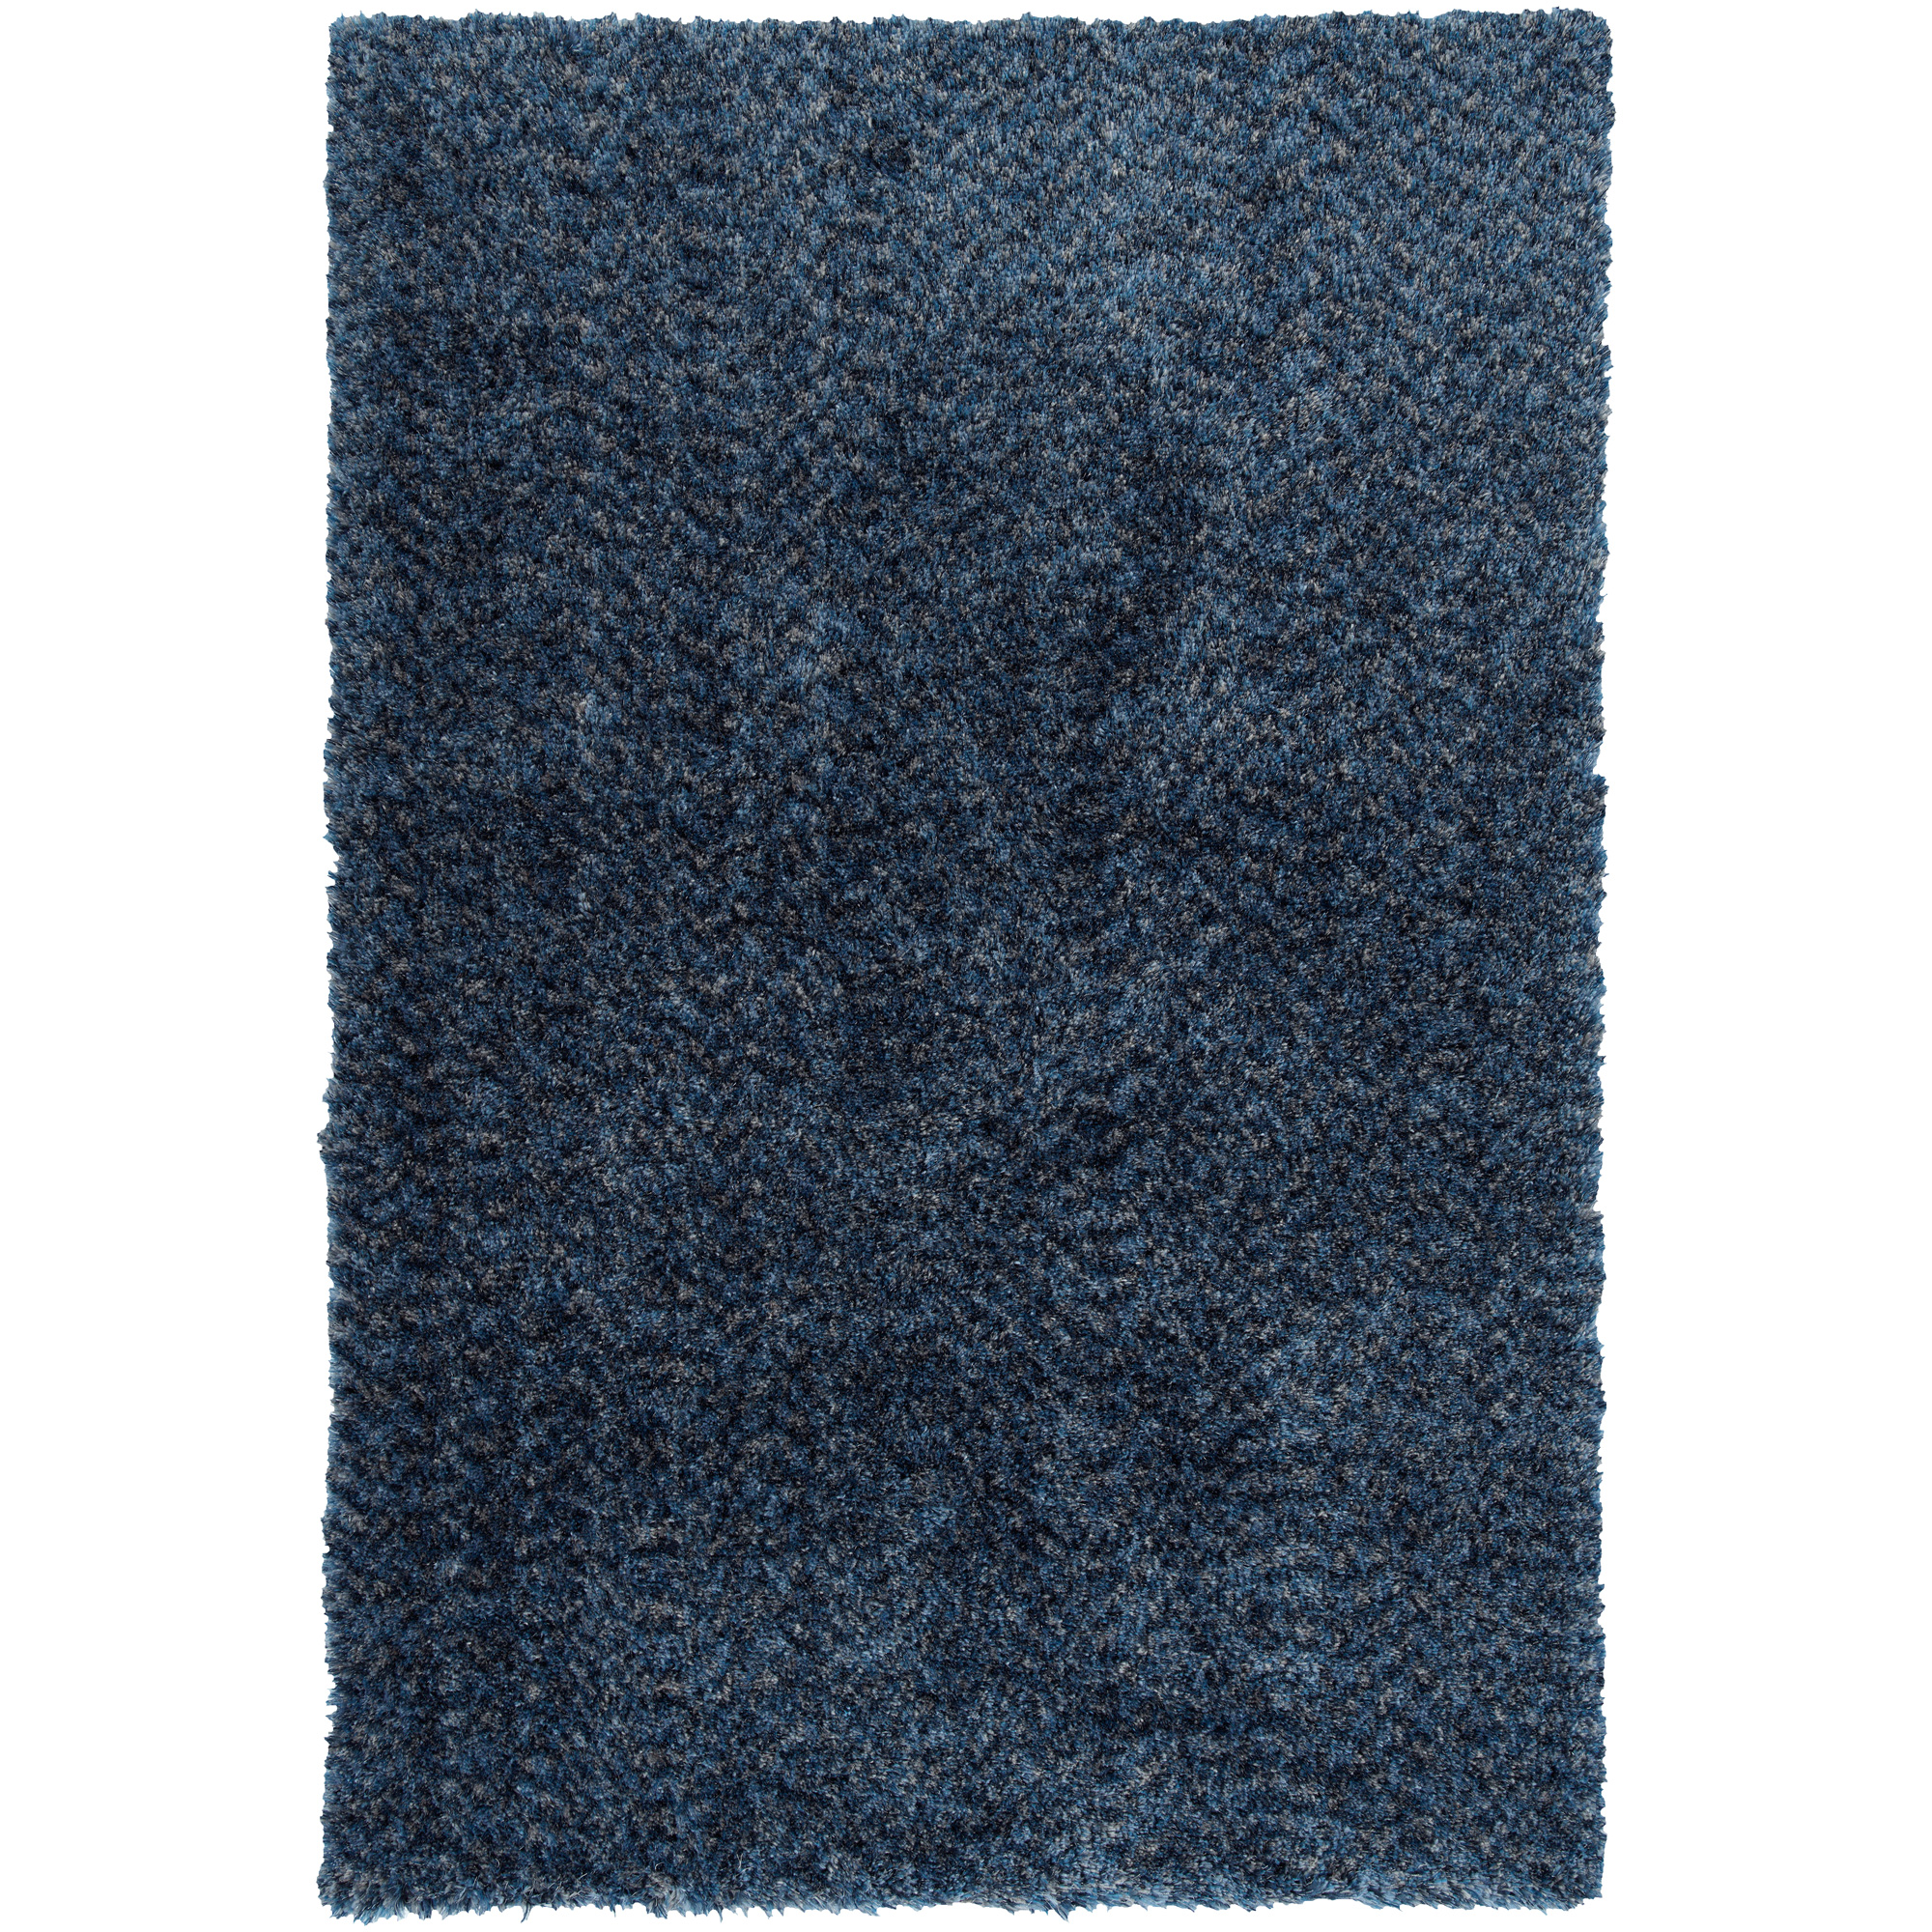 Dalyn Rug | Cabot Navy 5x8 Area Rug